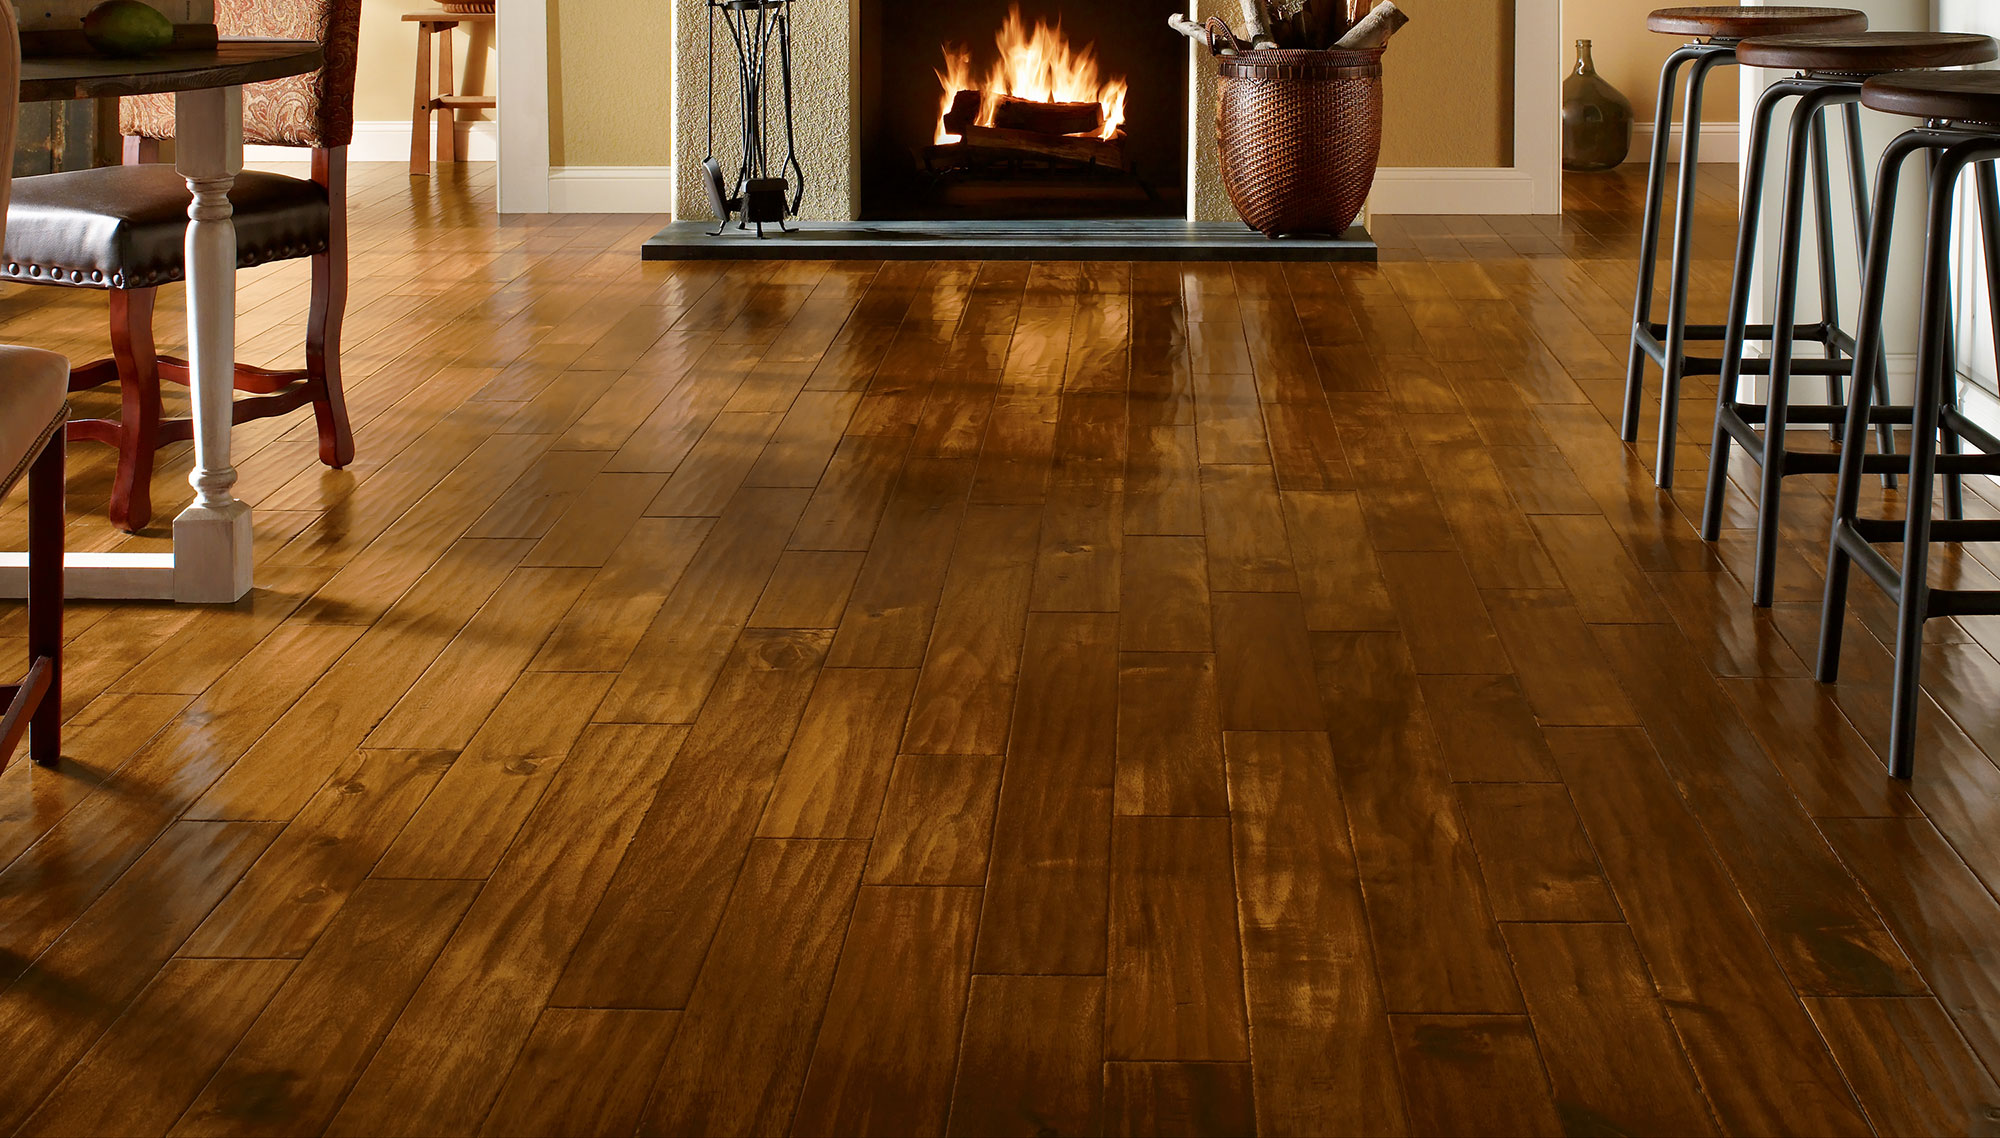 Hard Wood Flooring | Orange County Carpet Installation Company